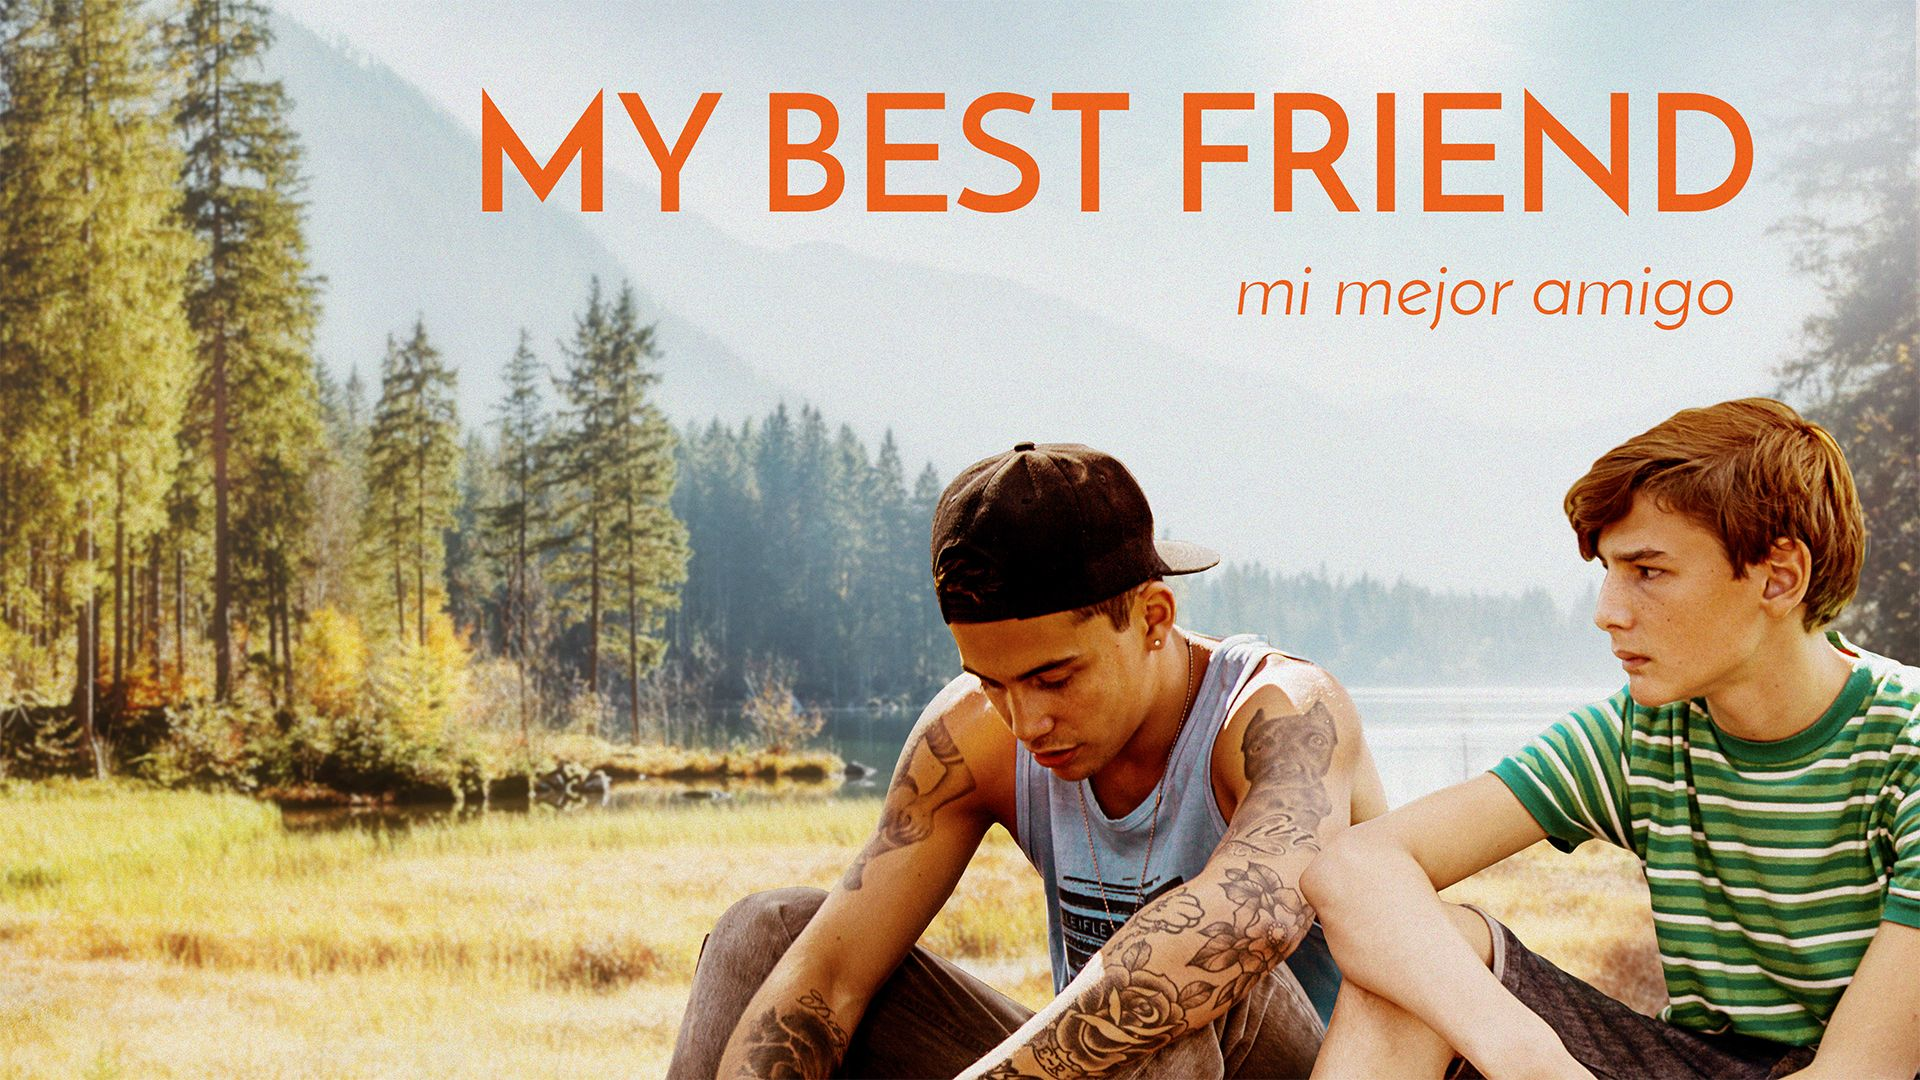 Pin By Breaking Glass Pictures On My Best Friend Breaking Glass Pictures Movie 2018 Picture Movie Best Friends I Am Awesome